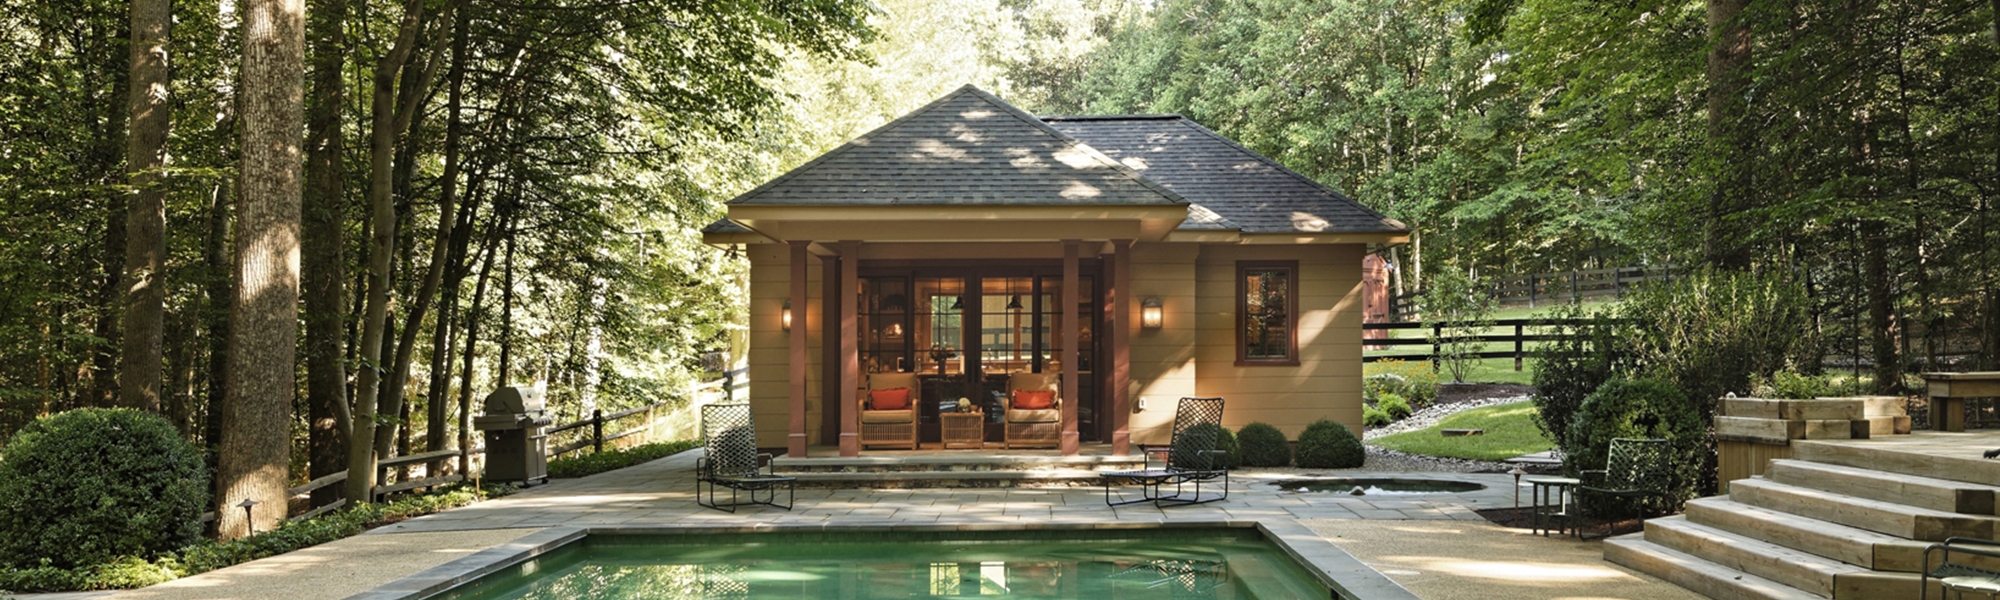 Great Falls Pool Design - Pool House Addition - Backyard Design